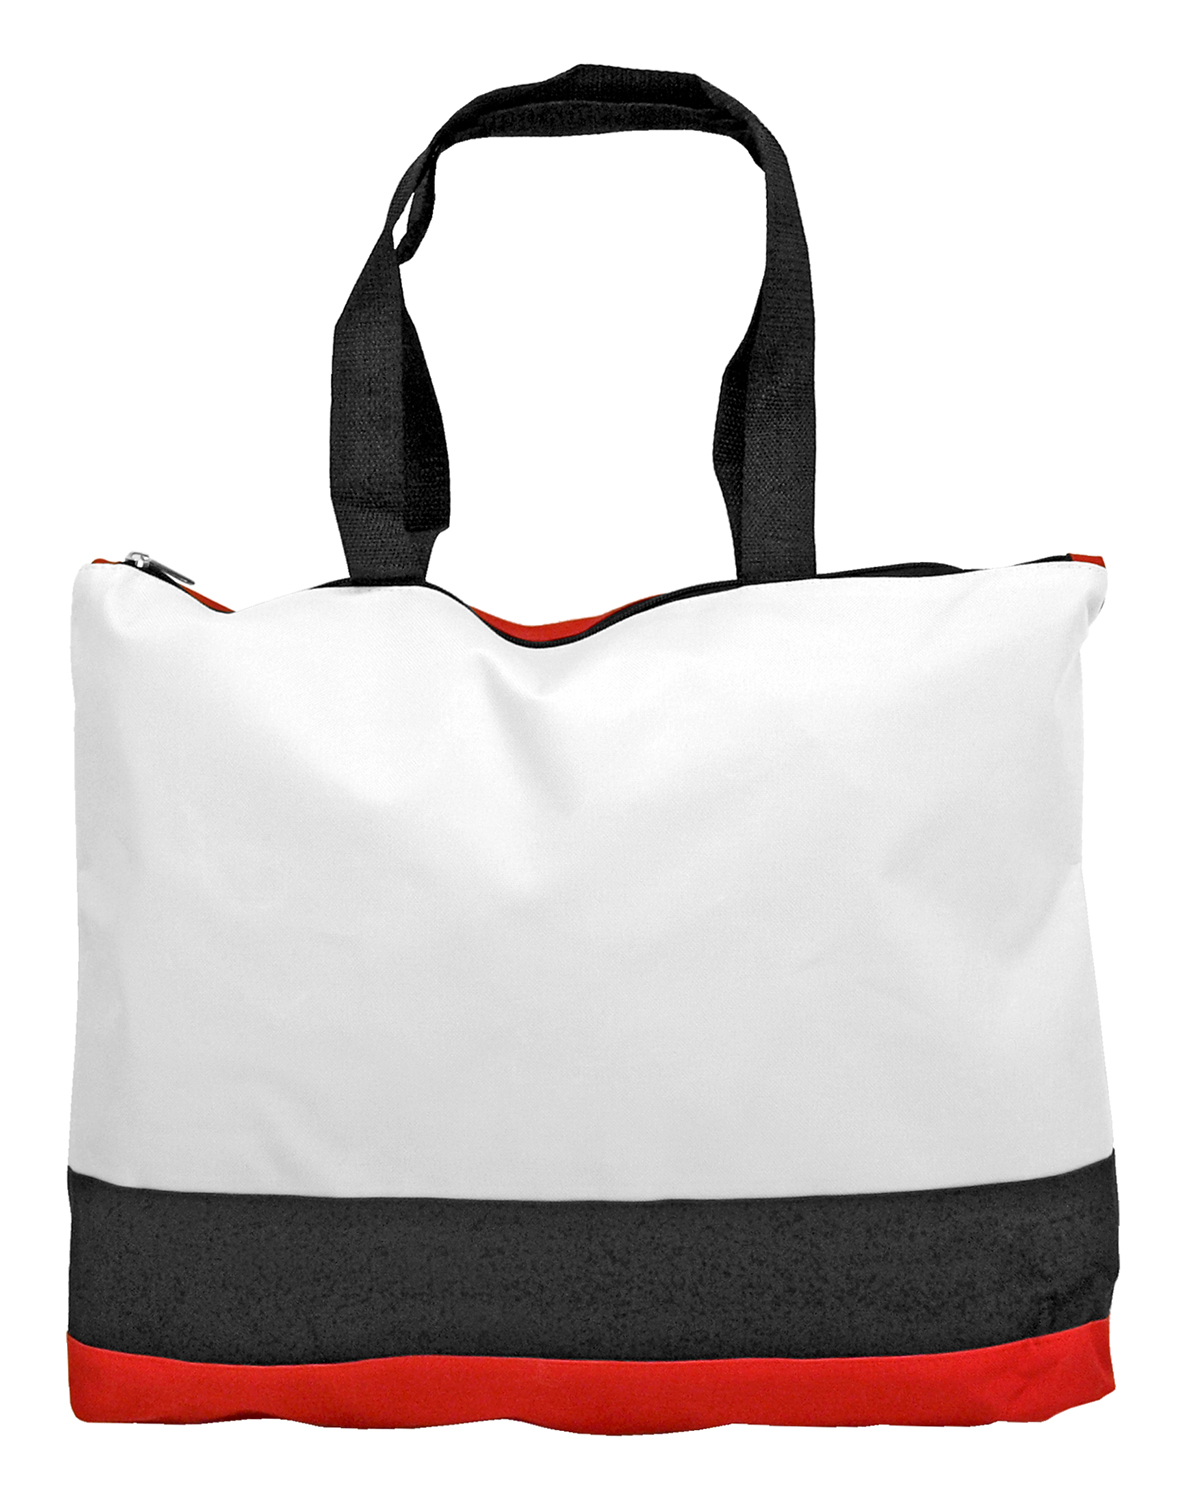 Zippered Grocery Shopping Tote Bag - Assorted Colors